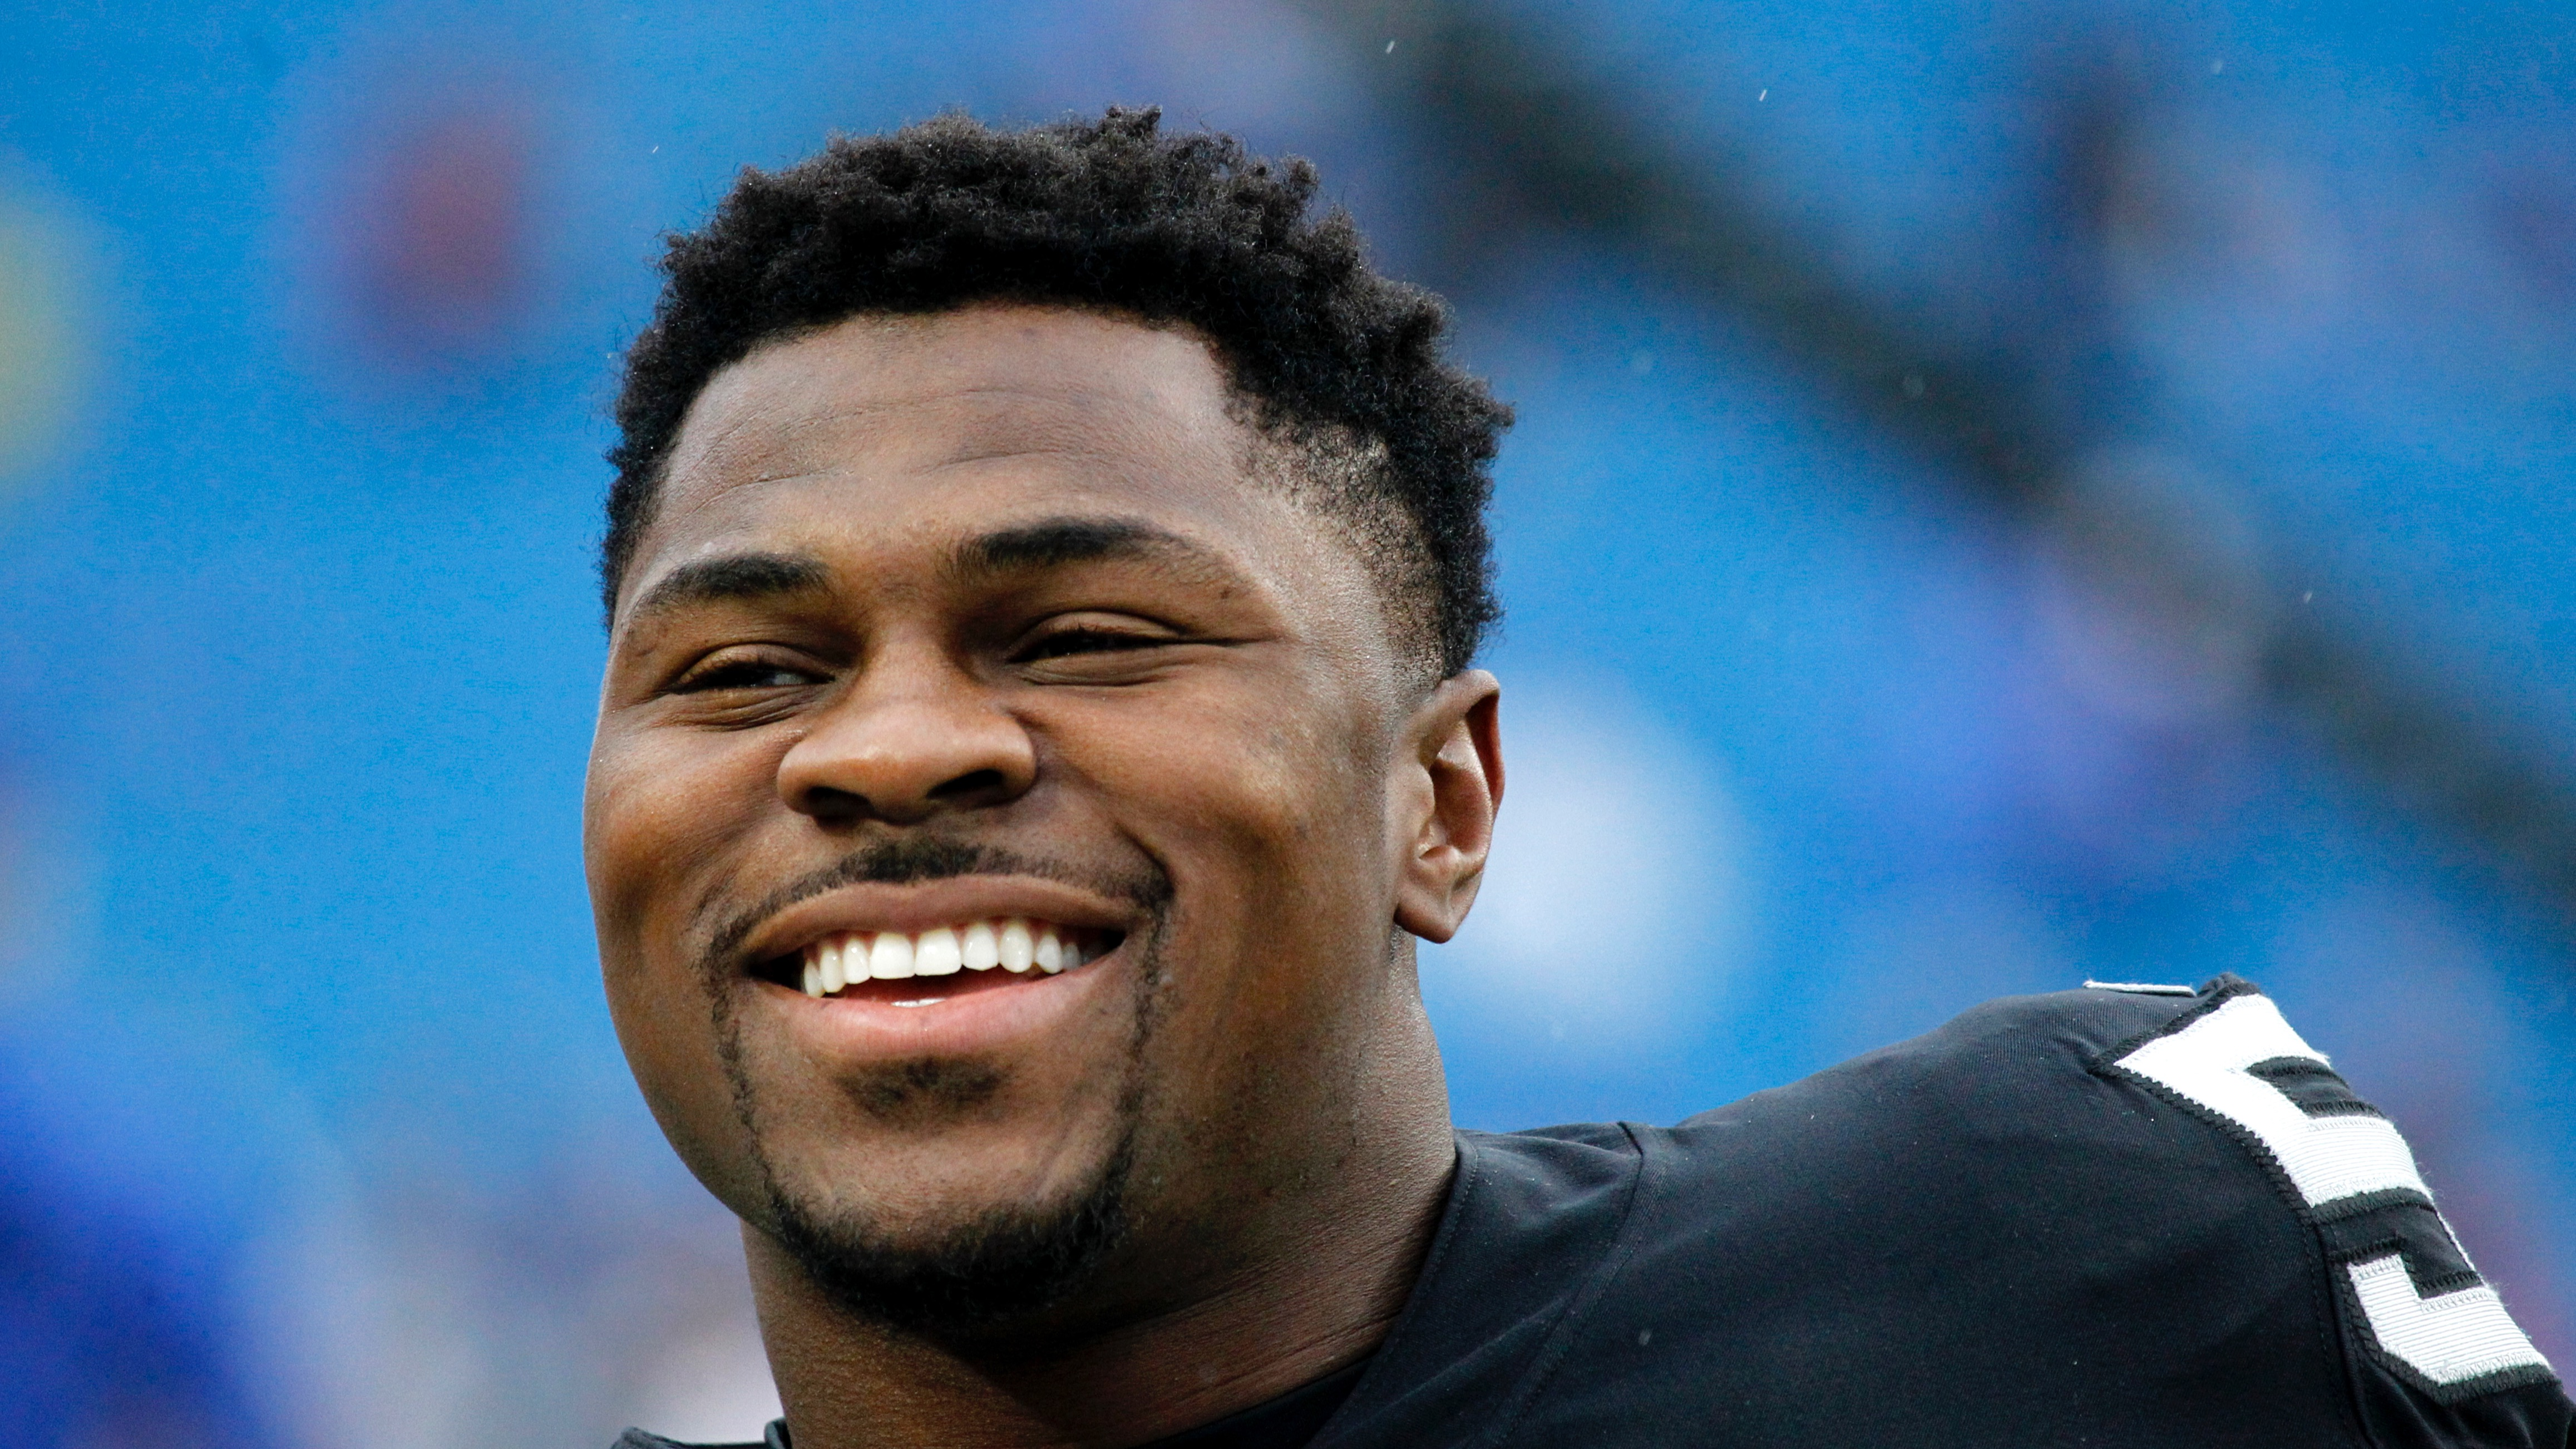 ab31f20e Khalil Mack's Bears jersey one of highest selling in preseason ... and he's  been in Chicago a week